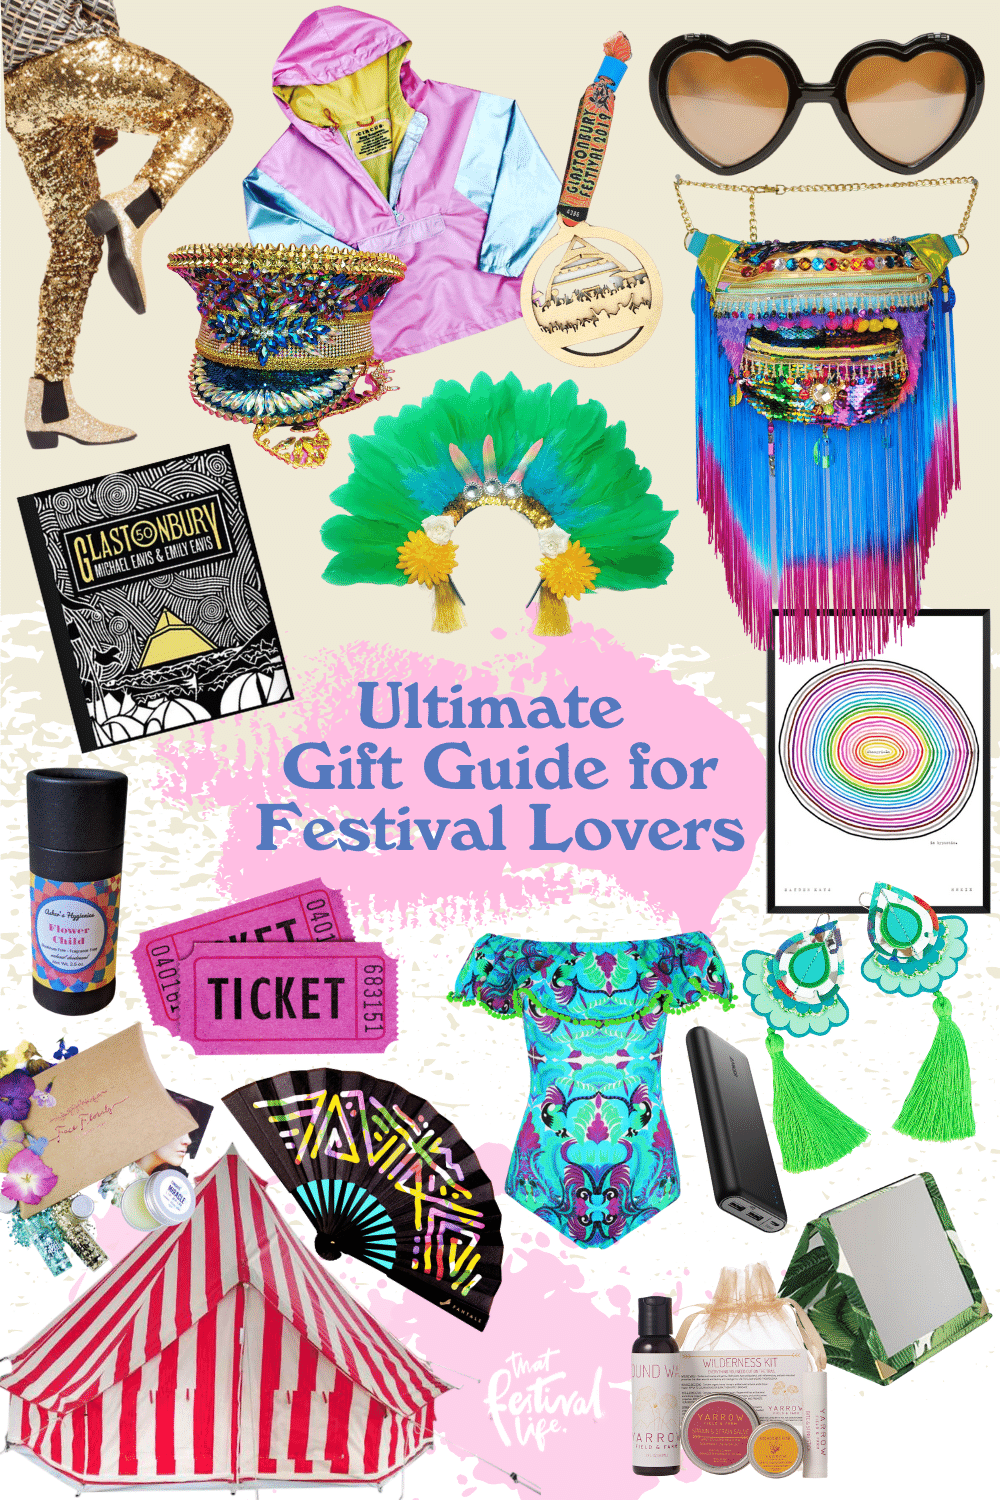 Present ideas and Gifts for festival goers